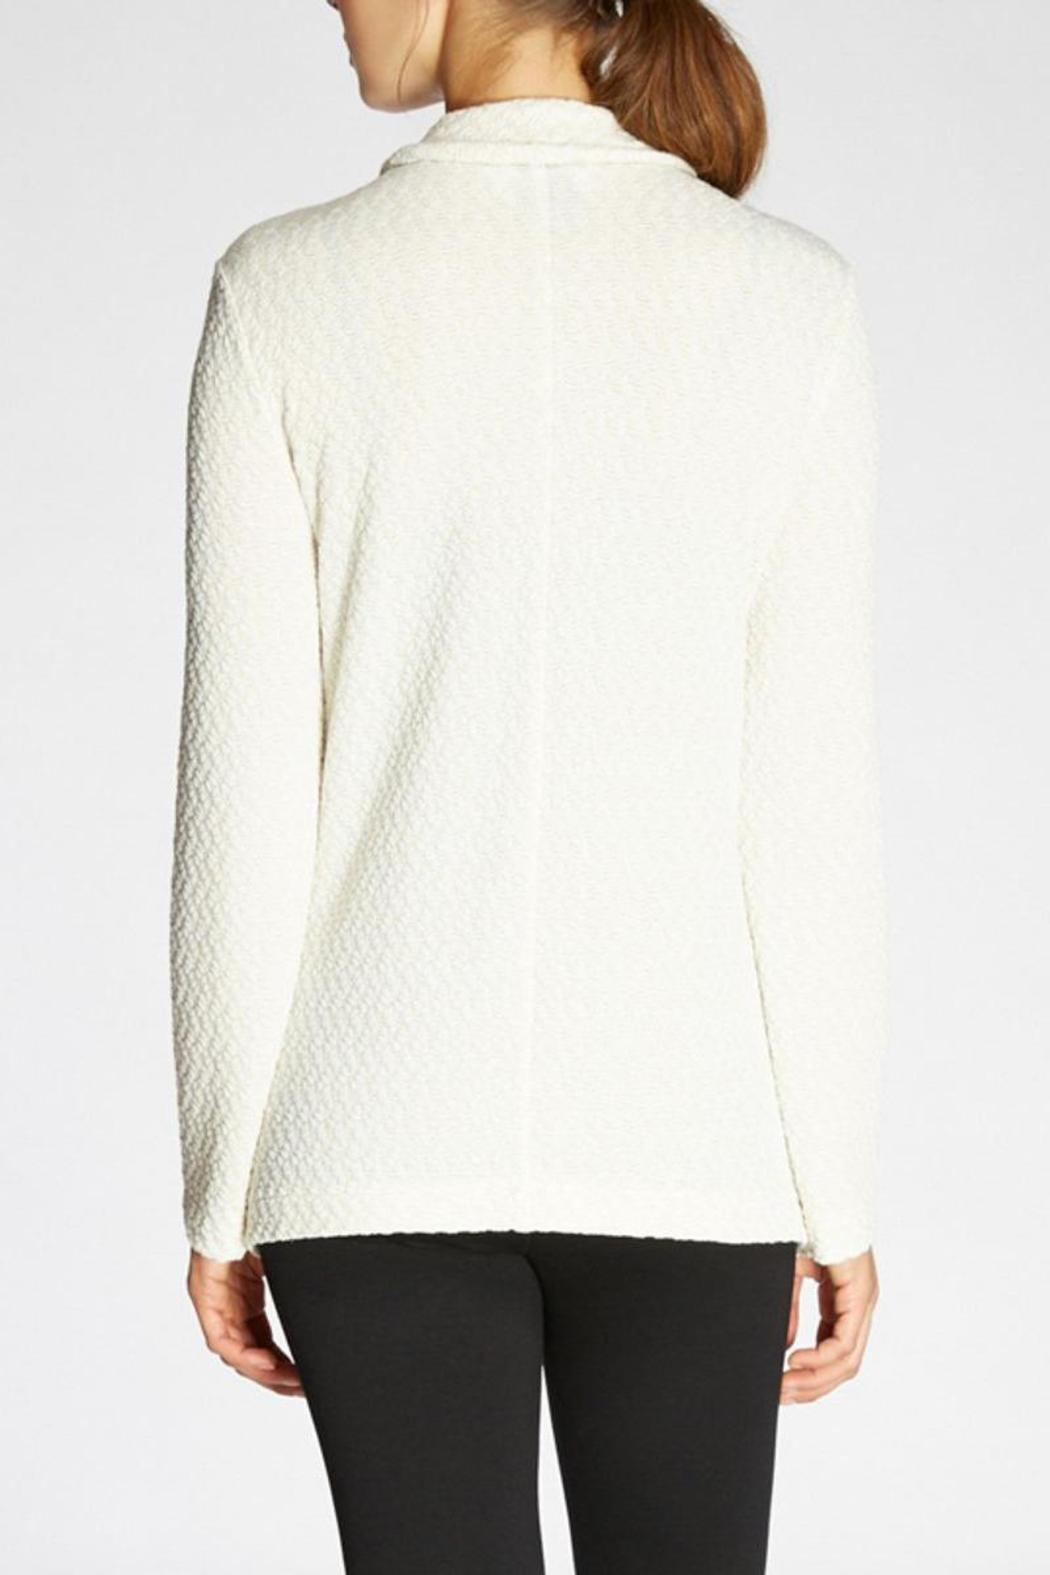 The Dressisng Room Metallic Knit Jacket - Side Cropped Image